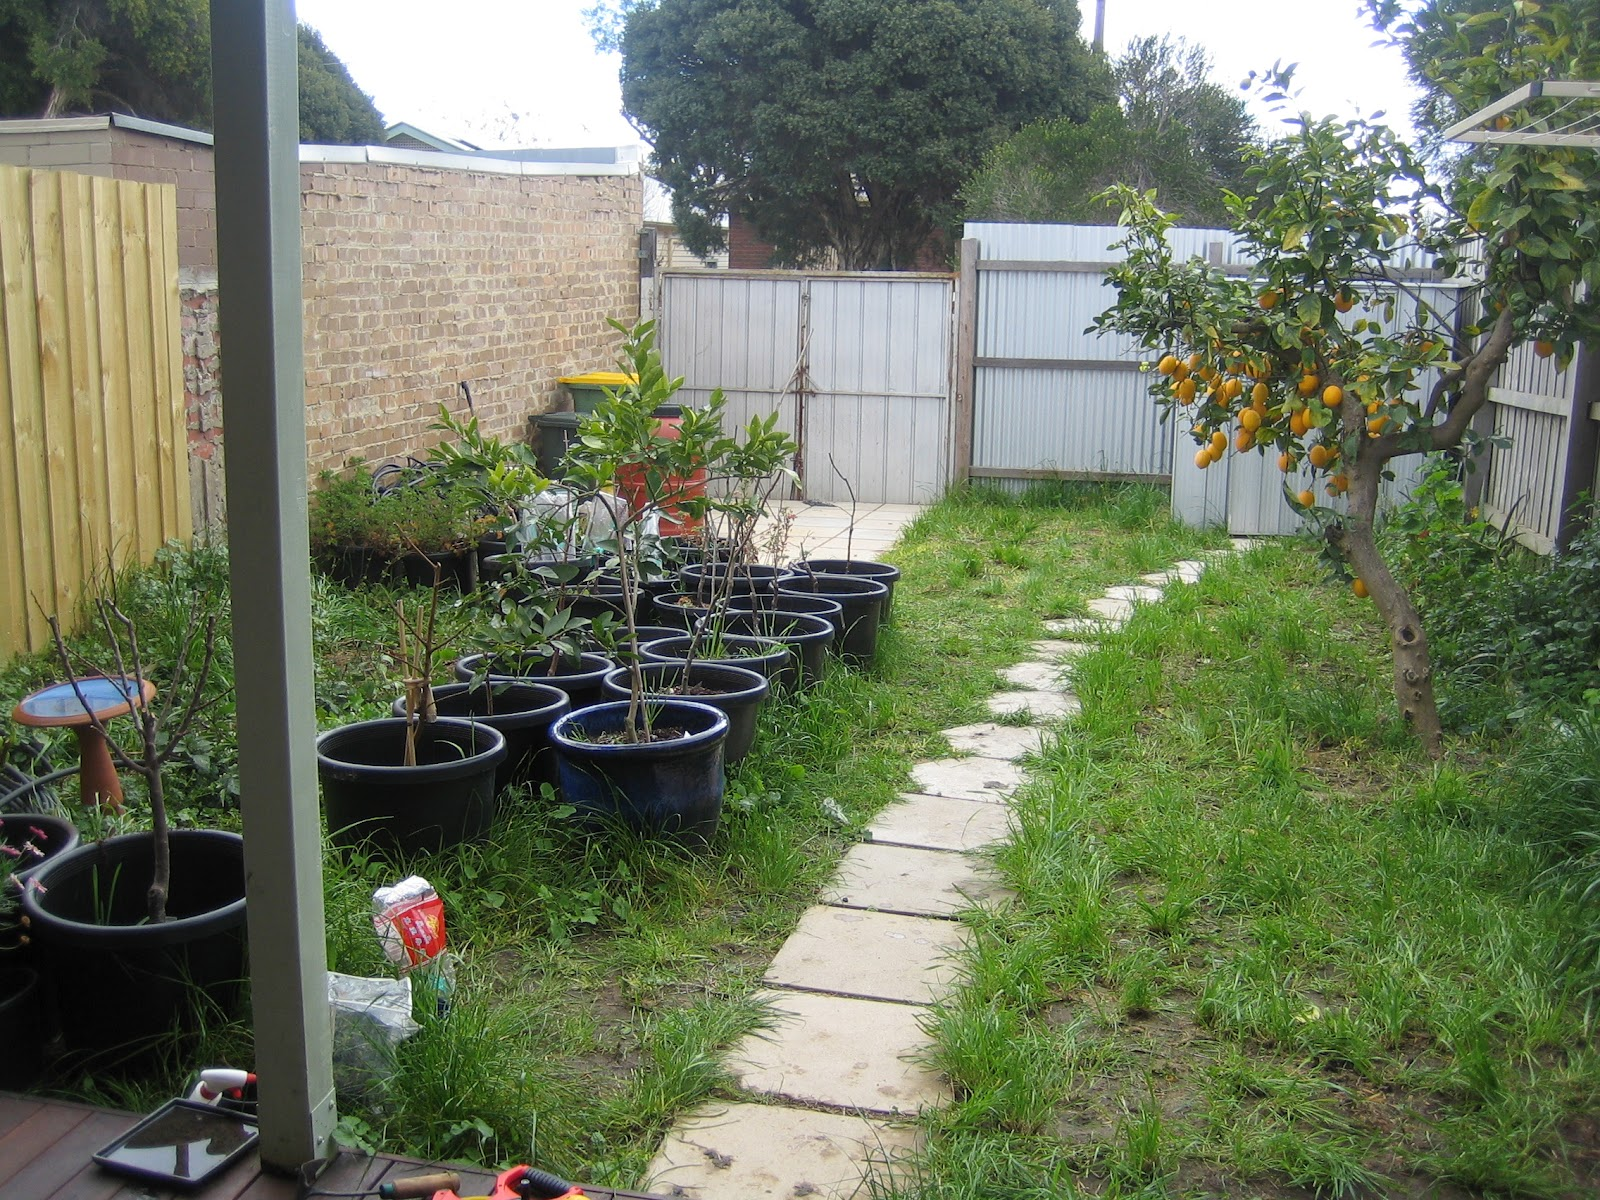 Three part plot permaculture design northcote for Permaculture garden designs